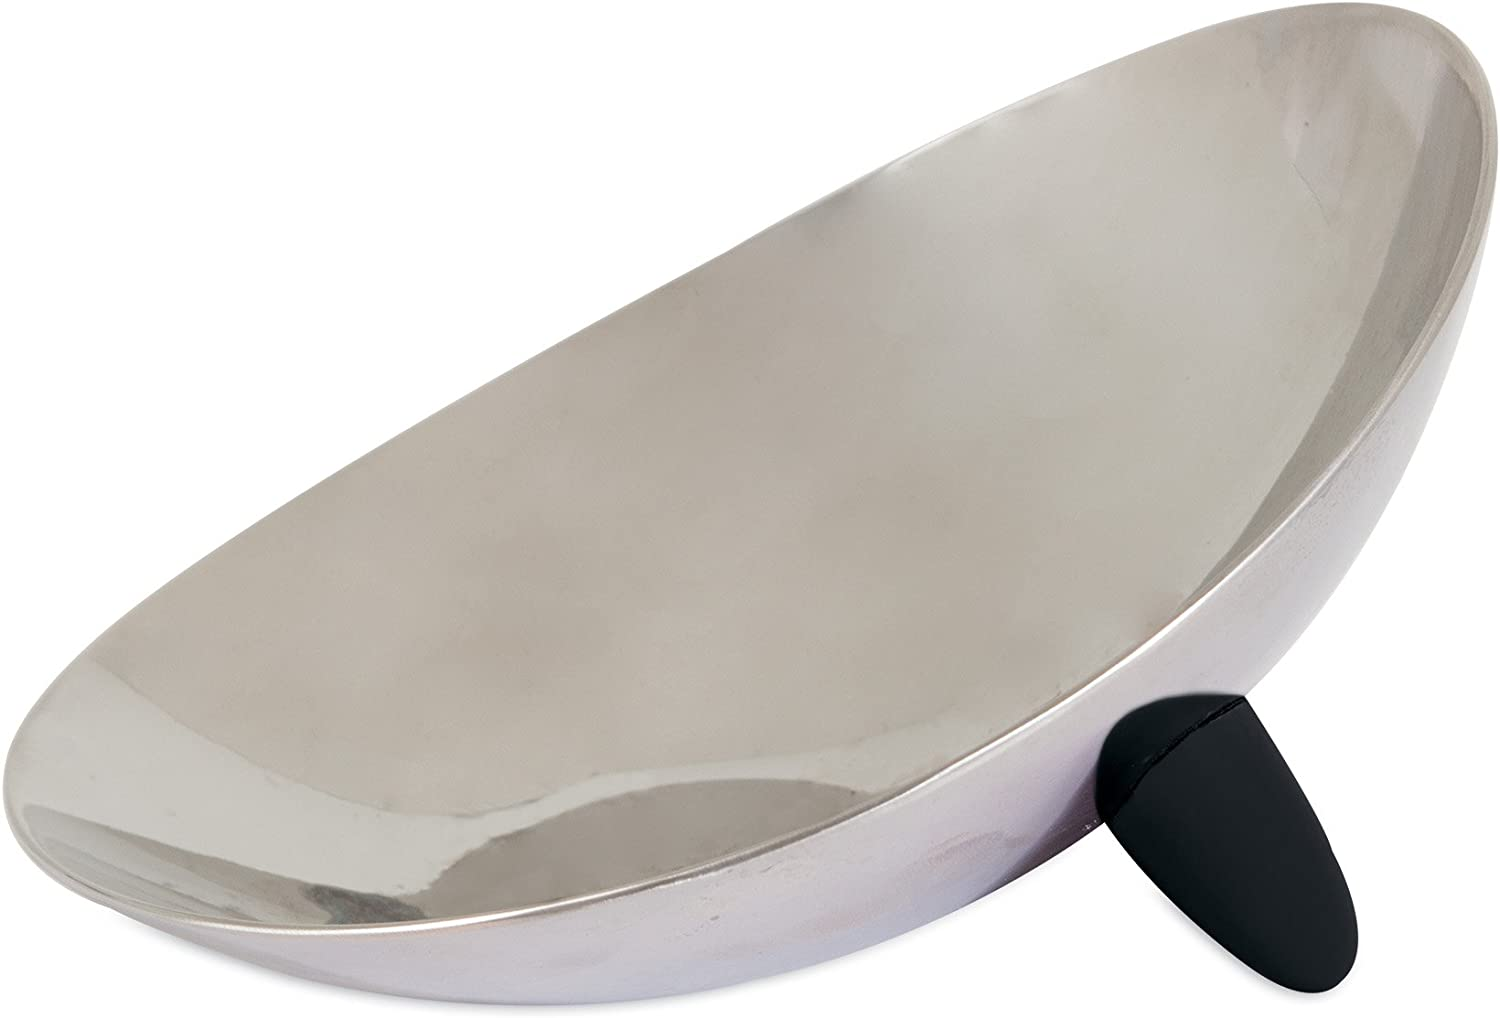 Jackson Galaxy Nova Stainless Steel Cat Bowl